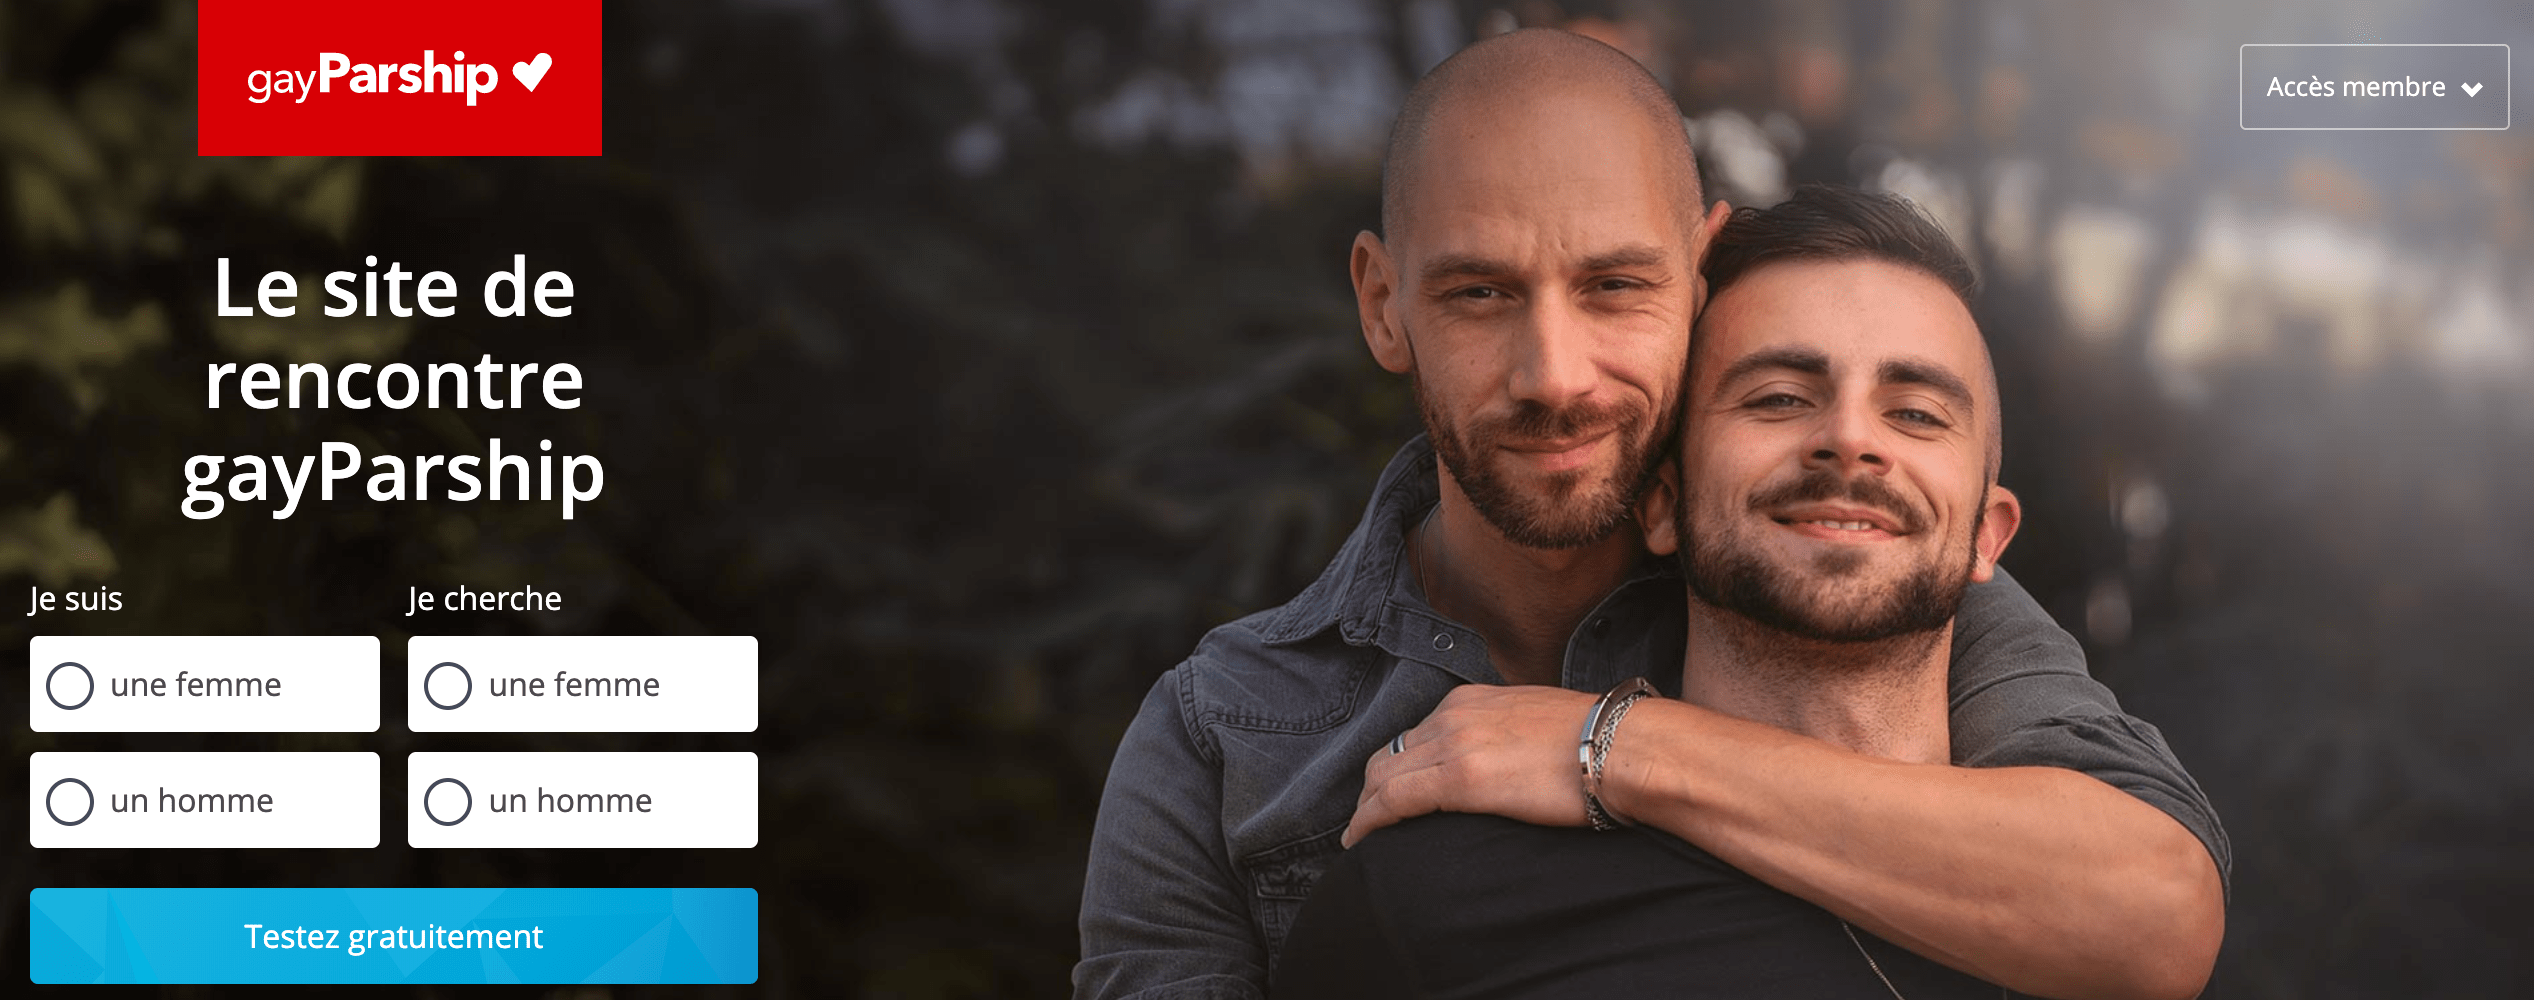 site de rencontre - gayparship